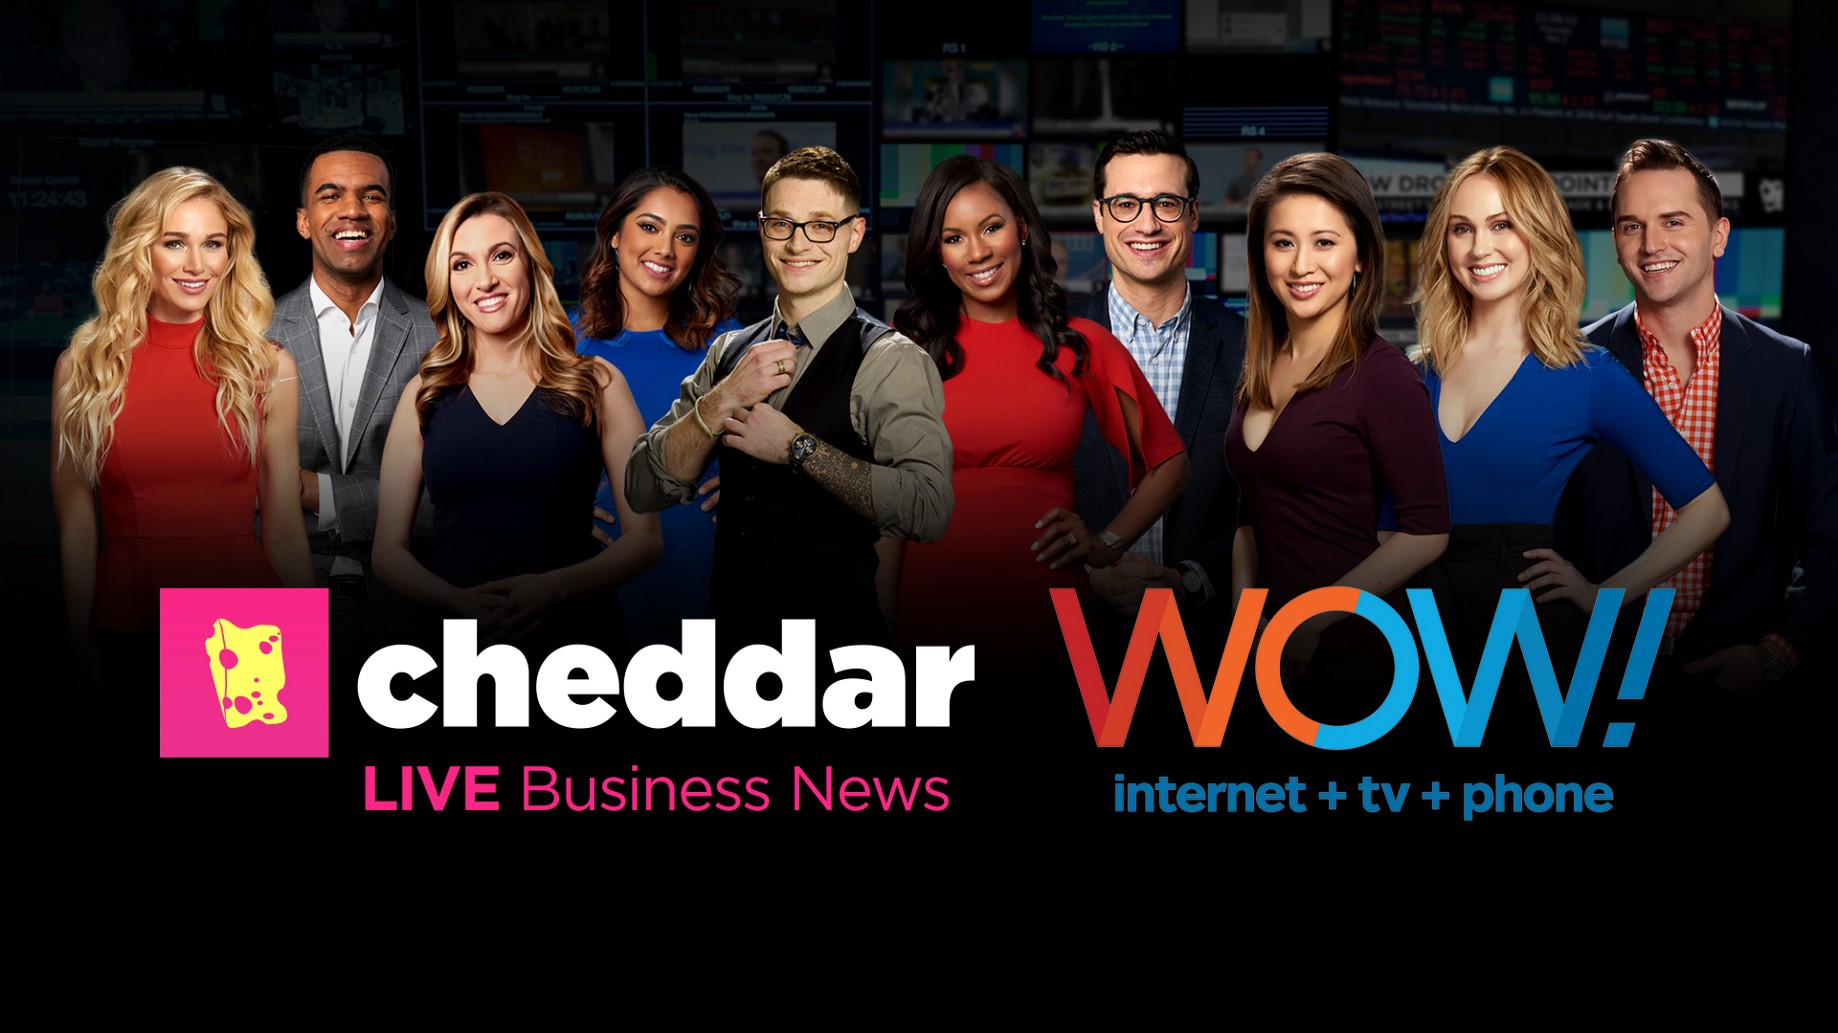 WOW! Introduces Cheddar to Nearly 400,000 Video Subscribers